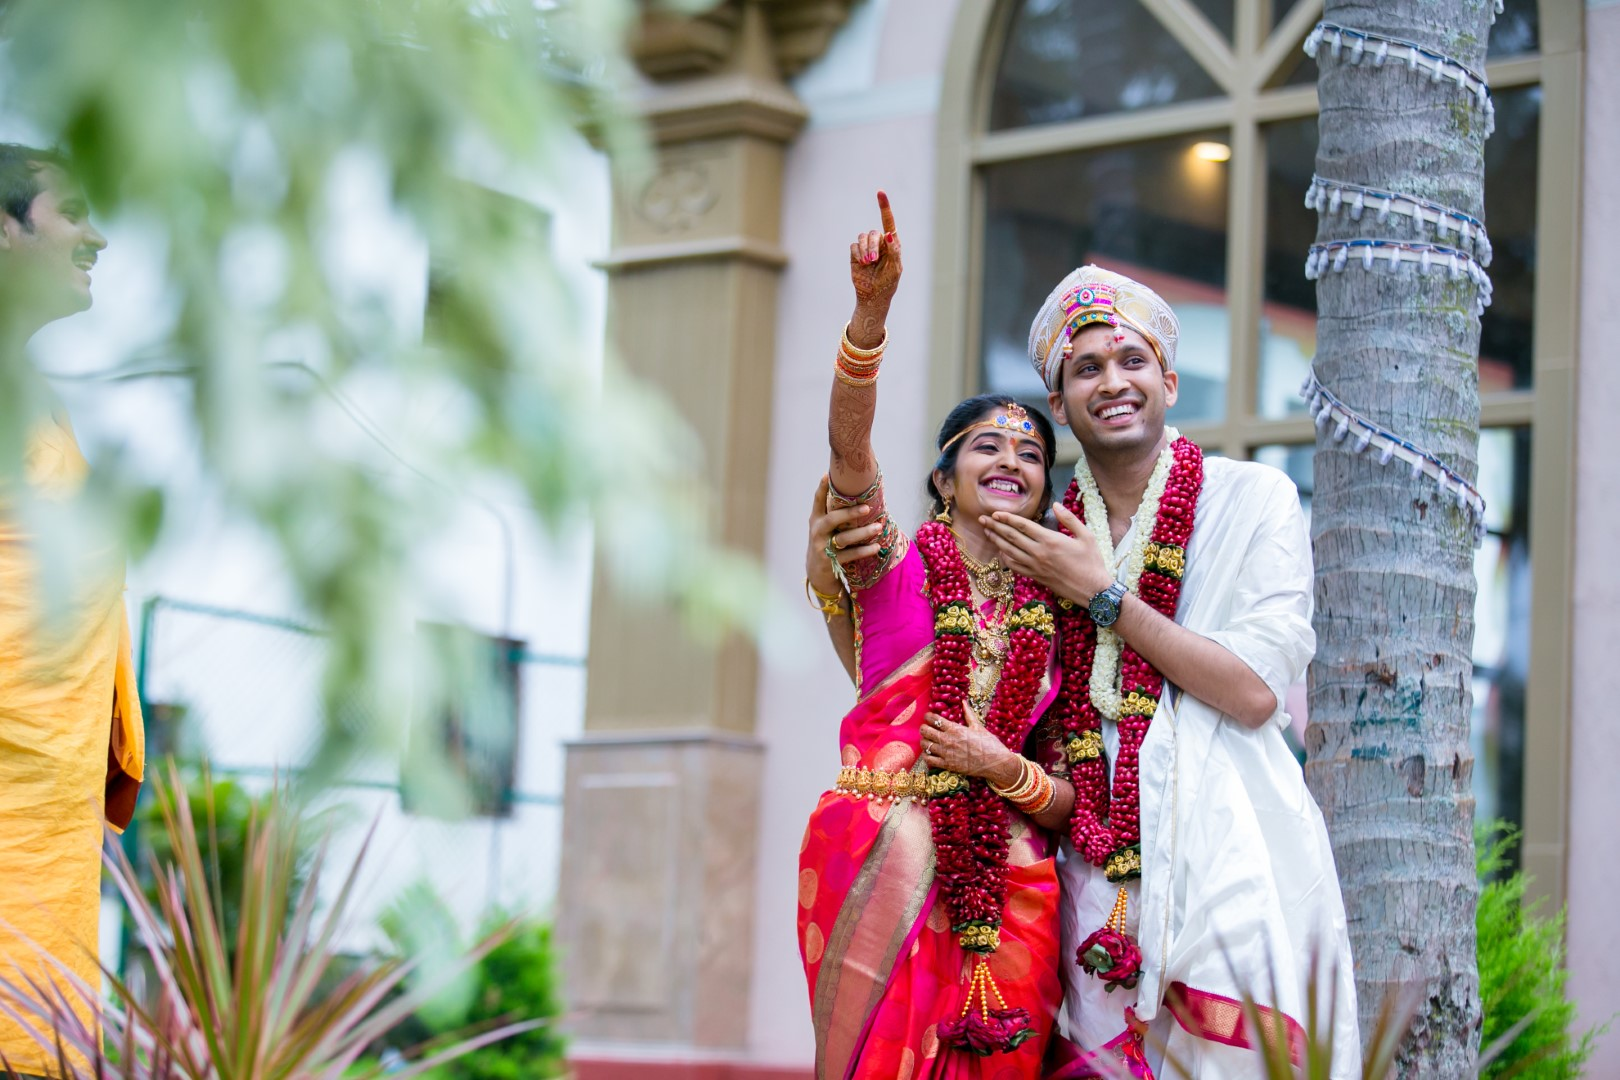 Vasuma & Sharath - Sharath is a wonderful candid photographer. He was very co-operative and understood our taste. We are really happy with all the beautiful moments he captured from our wedding.